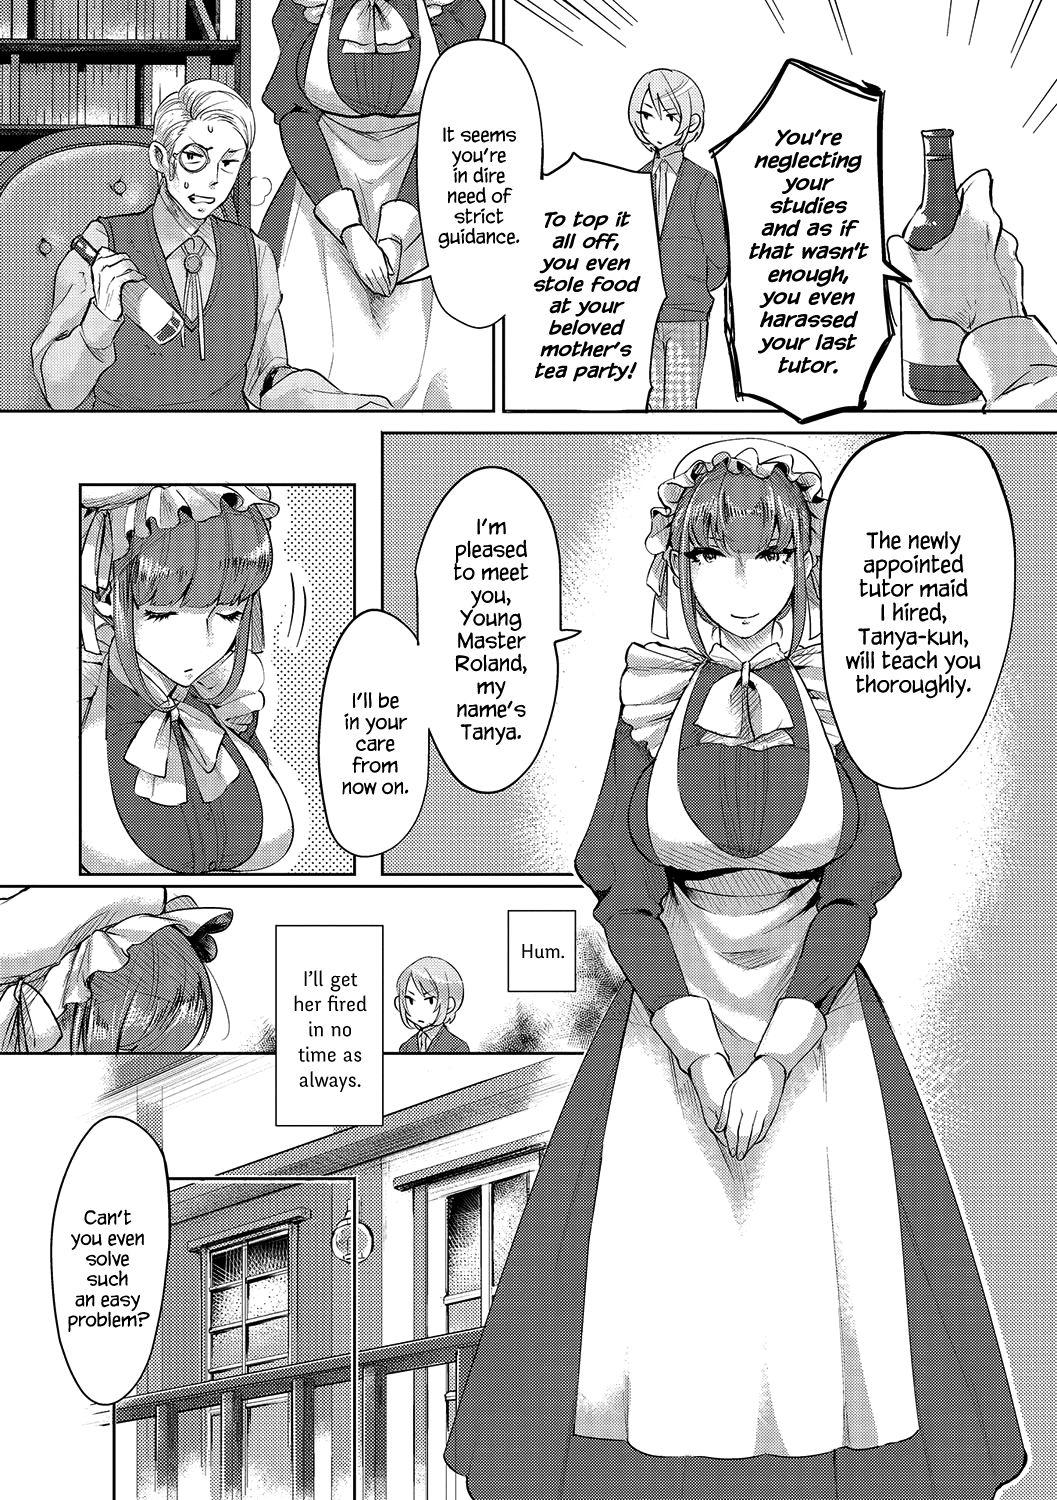 Bocchama no Aibou Maid | The Young Master's Partner Maid 1